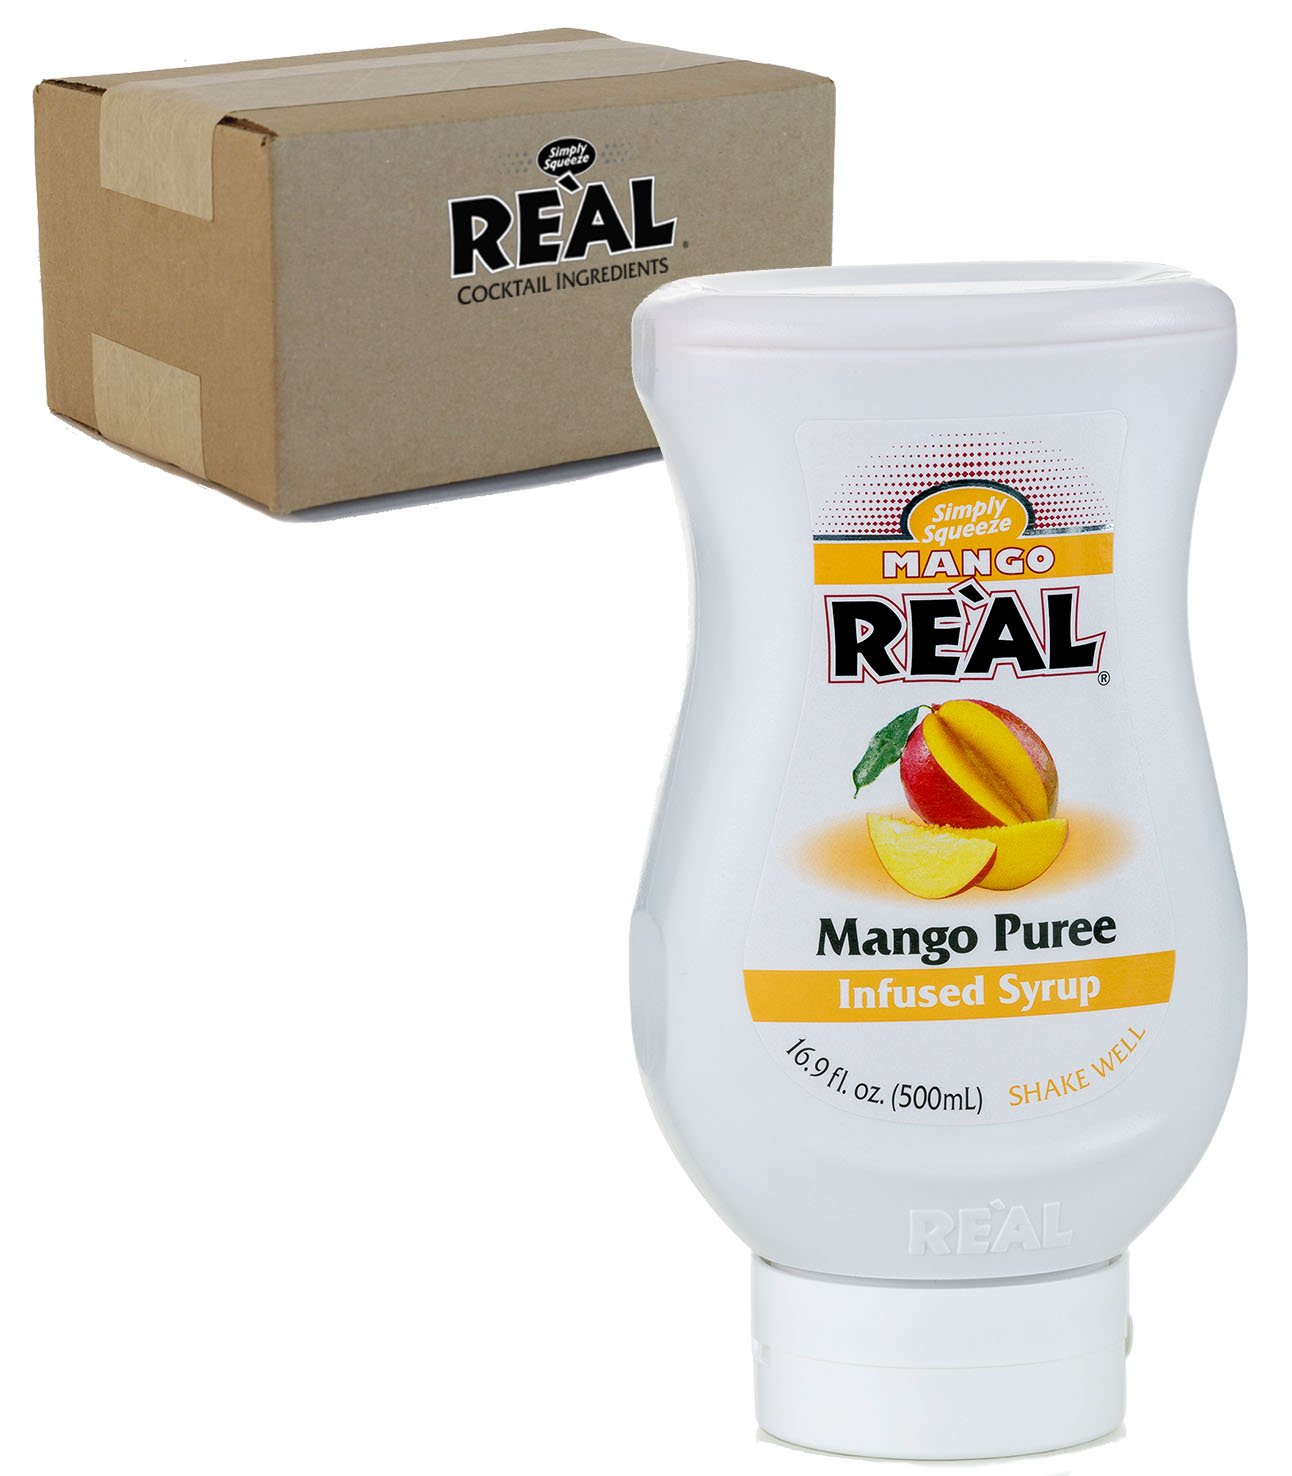 Mango Reàl, Mango Puree Infused Syrup, 16.9 FL OZ Squeezable Bottle (Pack of 1)